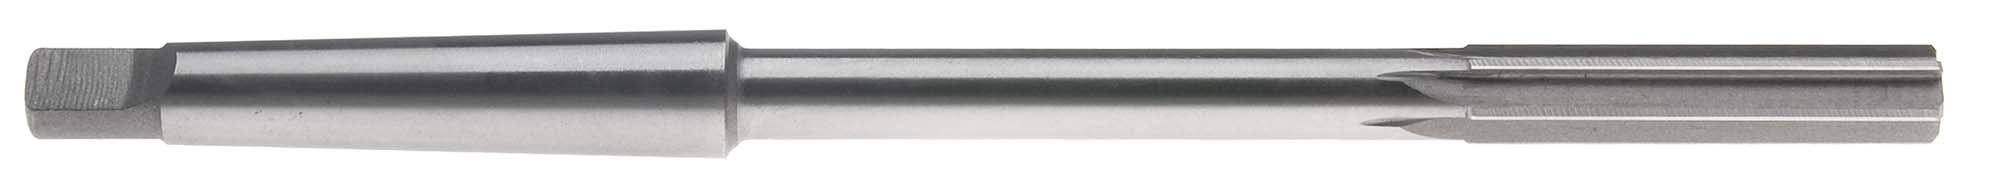 "1-7/16"" Taper Shank Machine Reamer, Straight Flute, High Speed Steel"